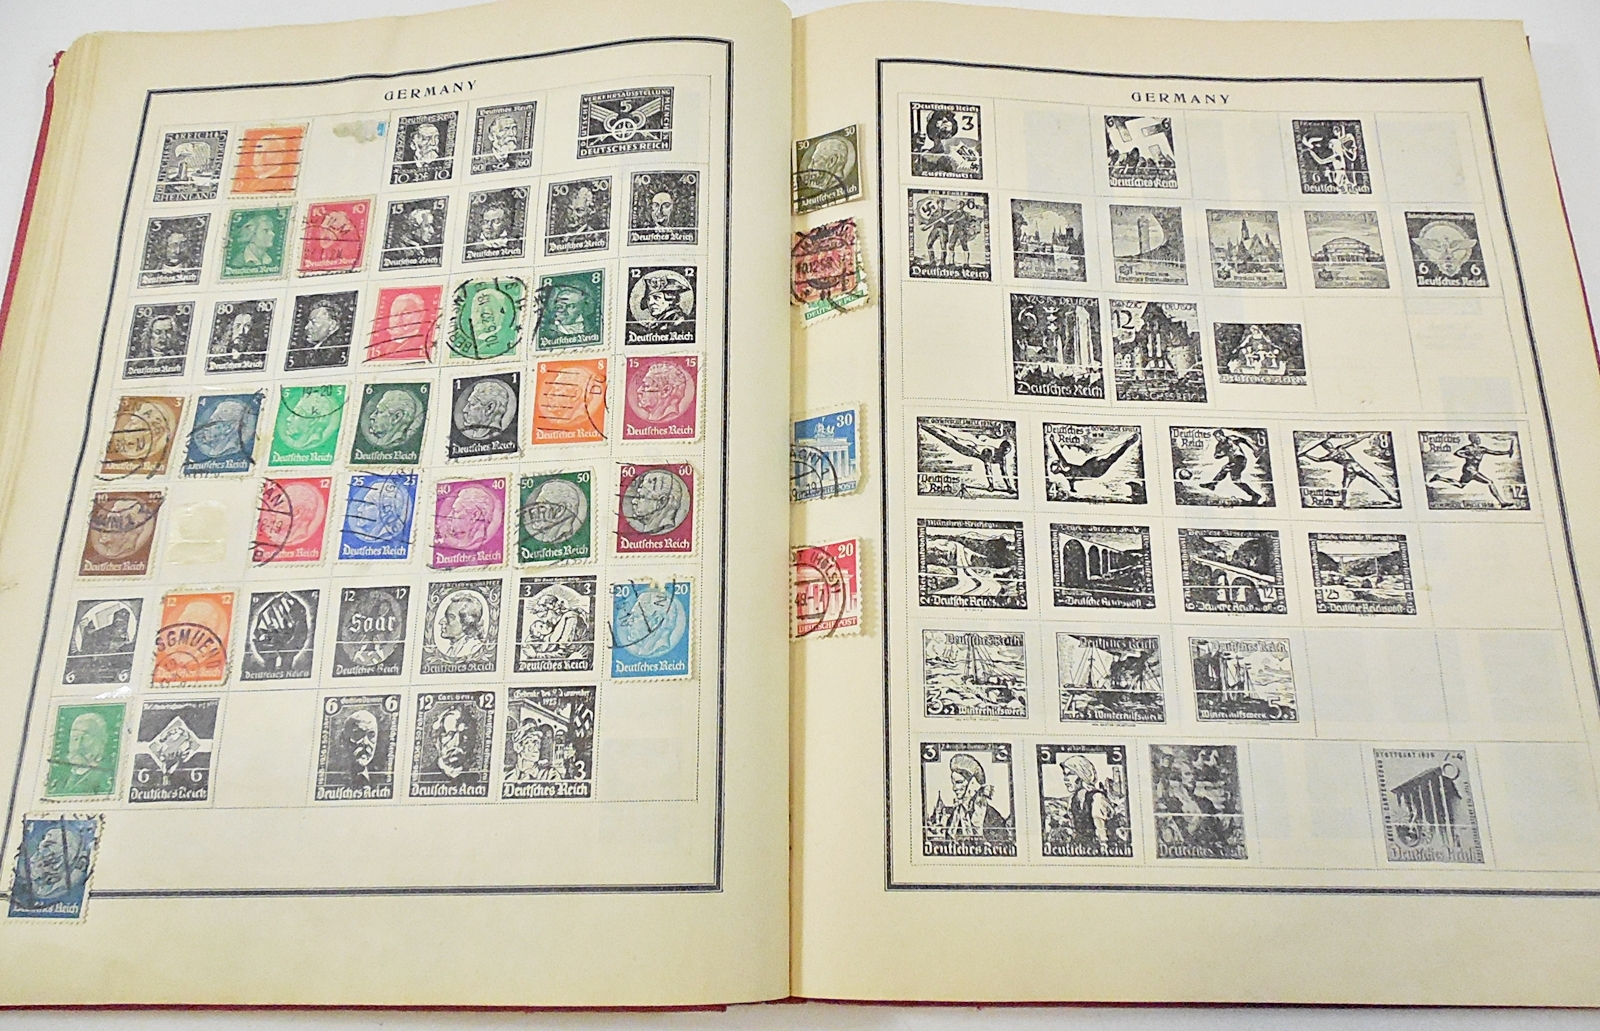 Scott Modern Postage Stamp Album, 1942 edition - virtually identical to my first two albums (which were the 1935 and 1938 editions). Images sourced from current eBay auctions.